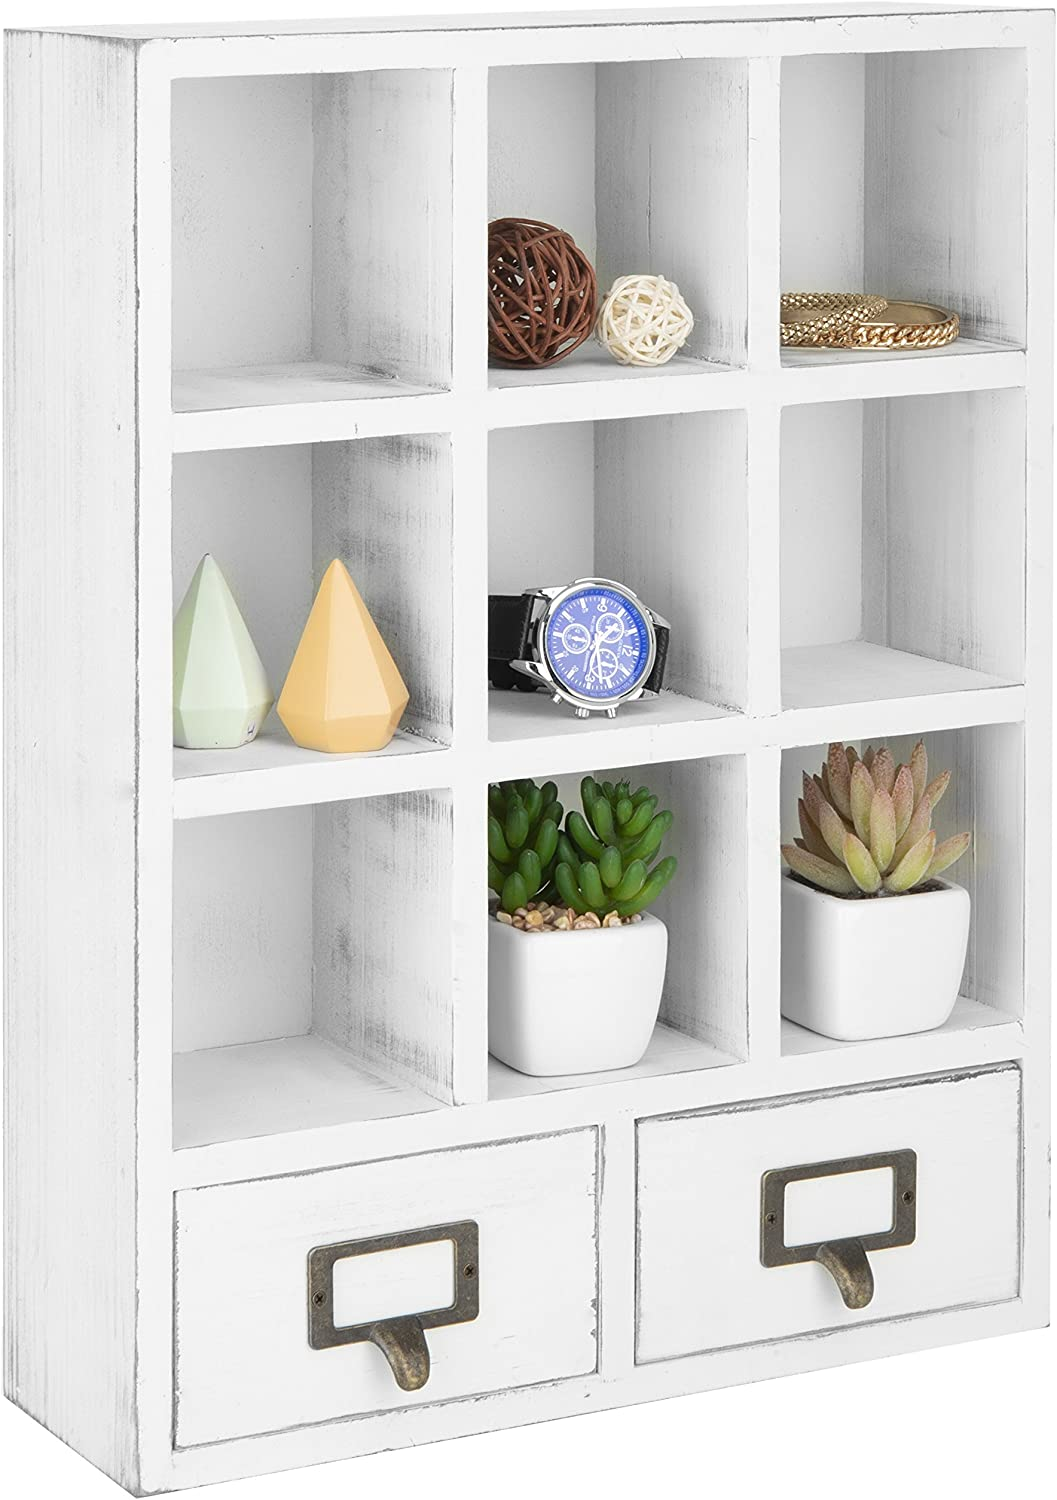 MyGift 9-Slot Vintage White Wall-Mounted Shadow Box Display Shelf with 2 Pullout Drawers